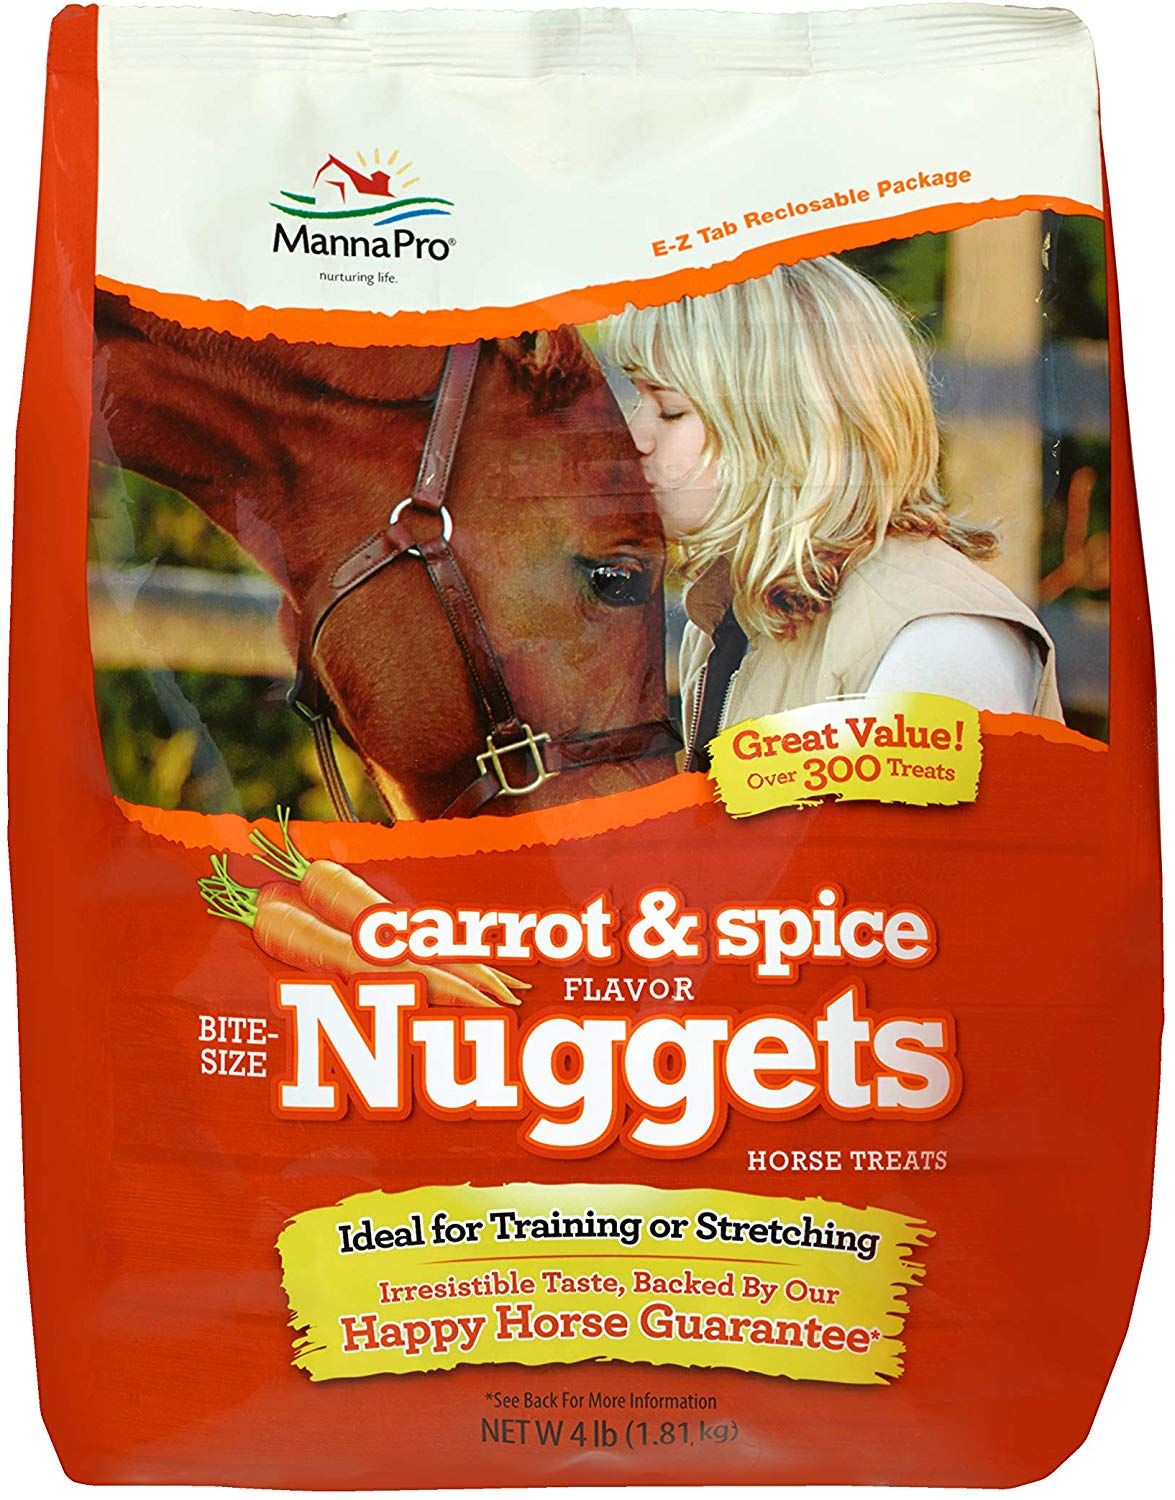 Manna Pro Carrot & Spice Flavored Nuggets Horse Treats, 4-lb